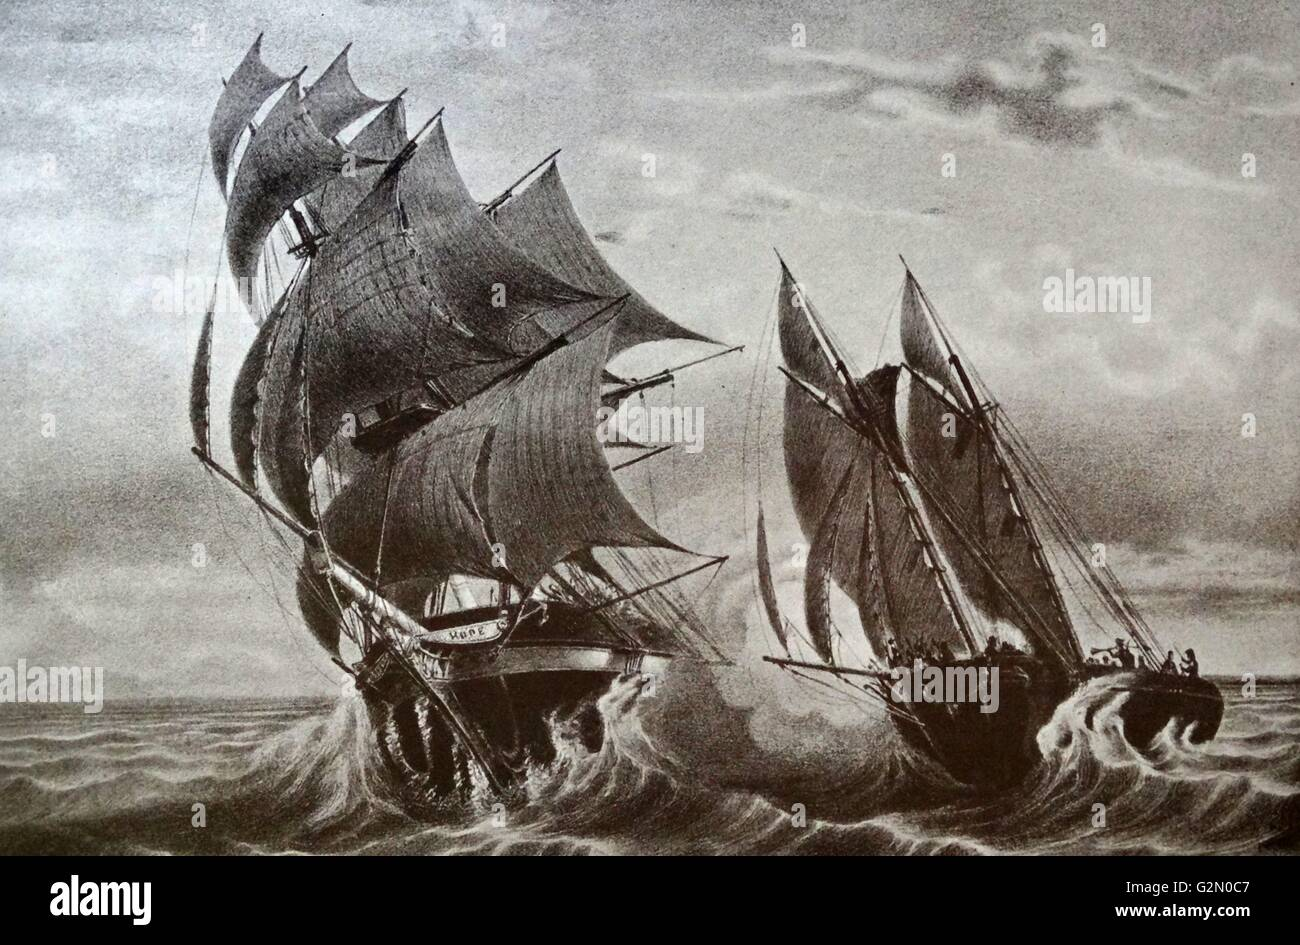 A pirate schooner ship, Commanded by Robert Surcouf Attacking the